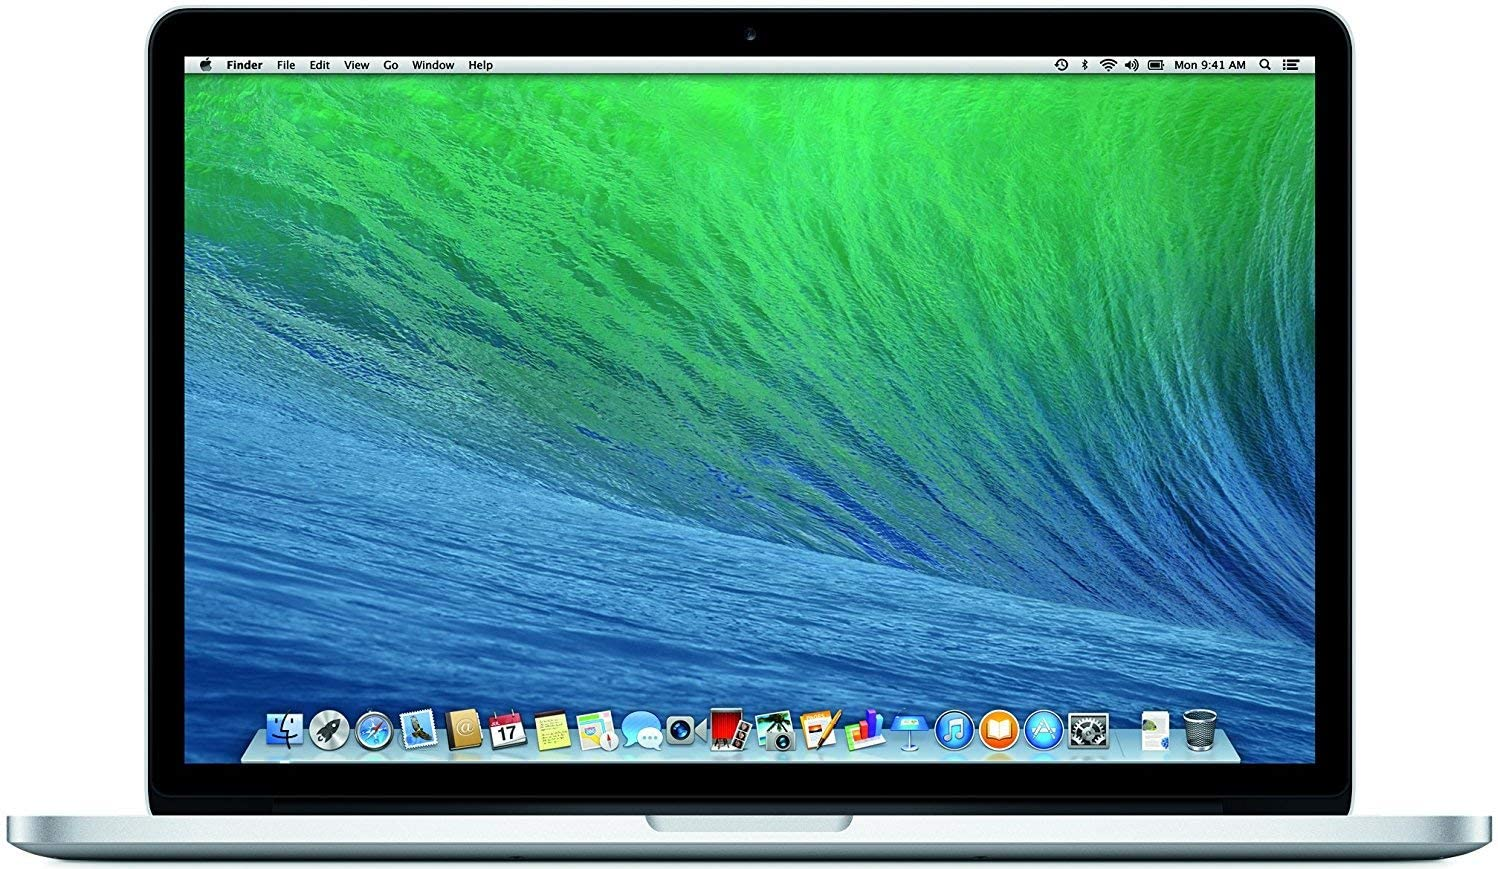 Apple MacBook Pro 15in Core i7 2.8GHz Retina (MGXG2LL/A), 16GB RAM, 512GB Solid State Drive (Renewed)